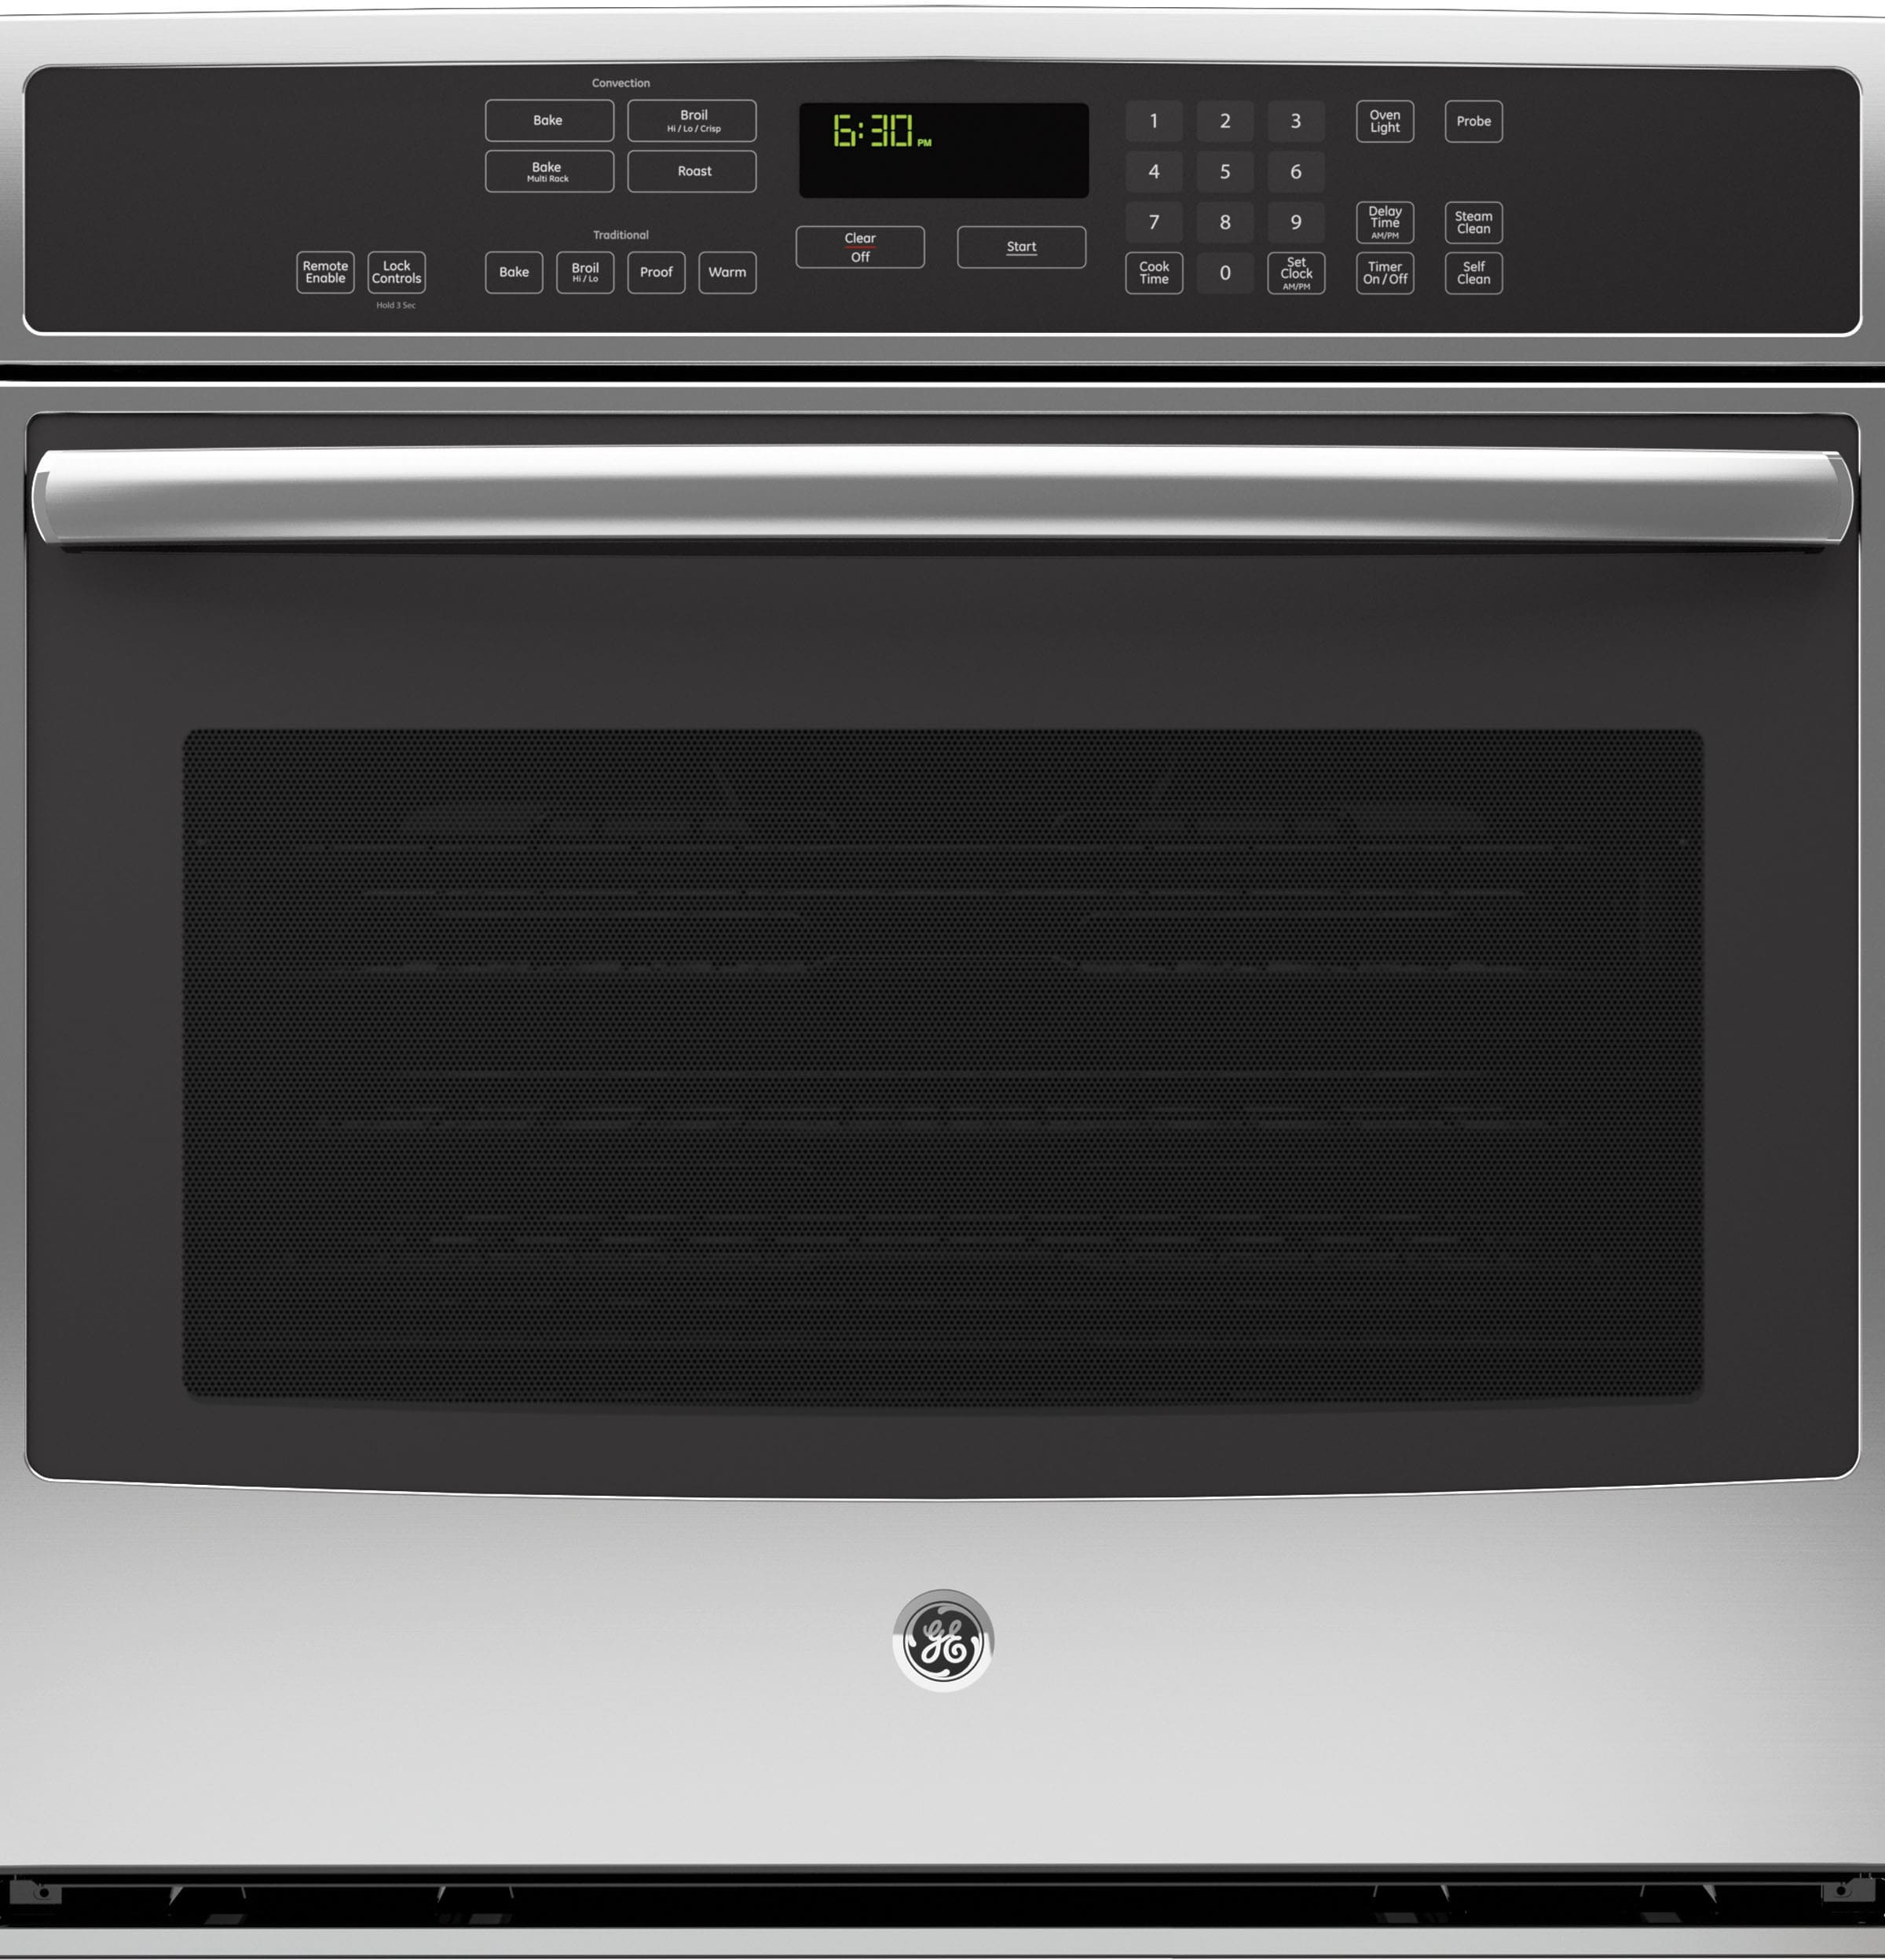 steel breville dp view stainless hamilton beach larger amazon oven convection slice toaster